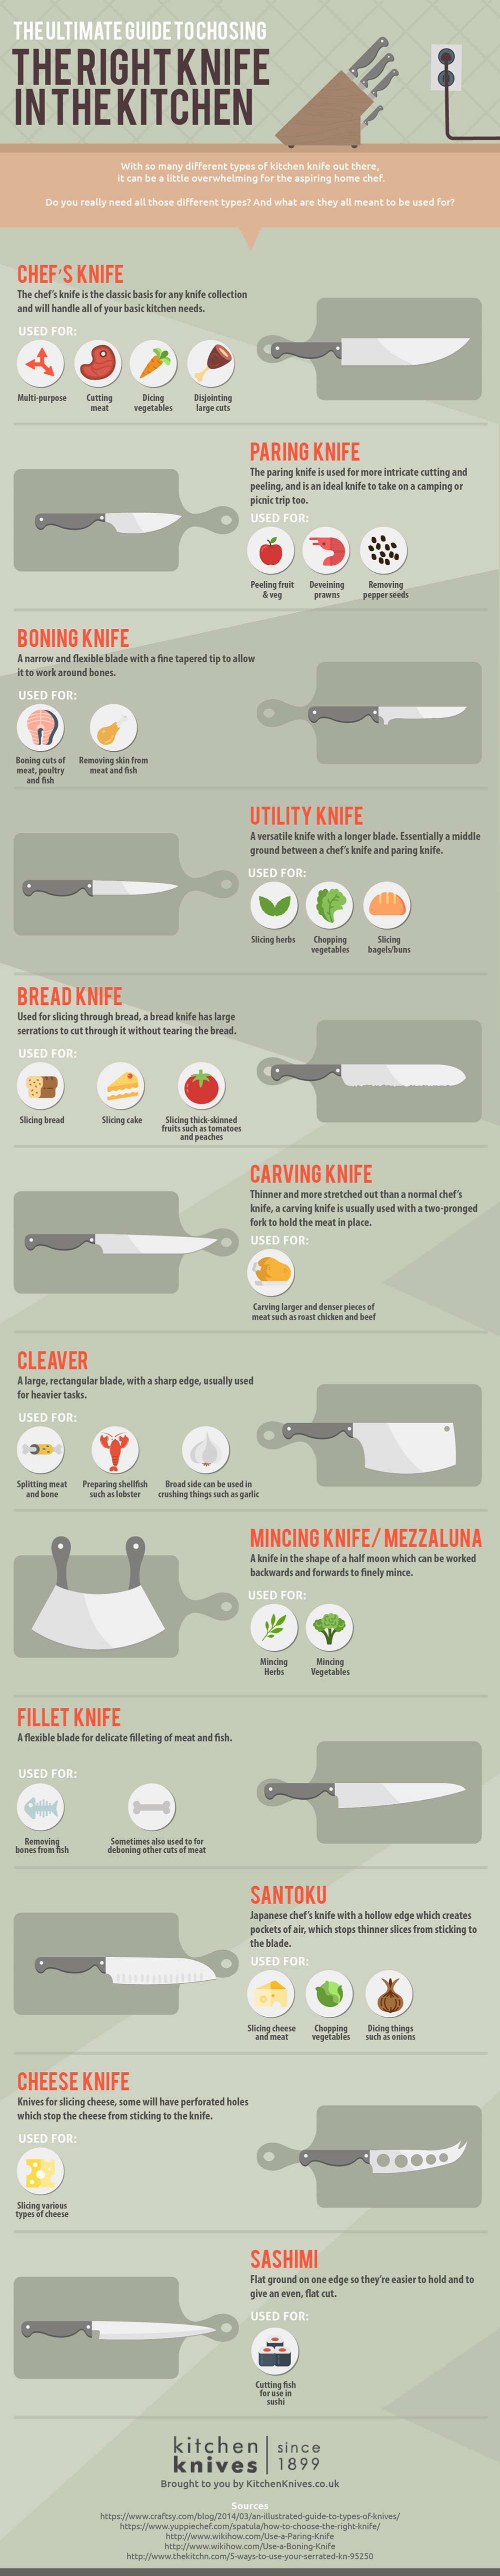 which knife is best to use when cutting various foods kitchen knives